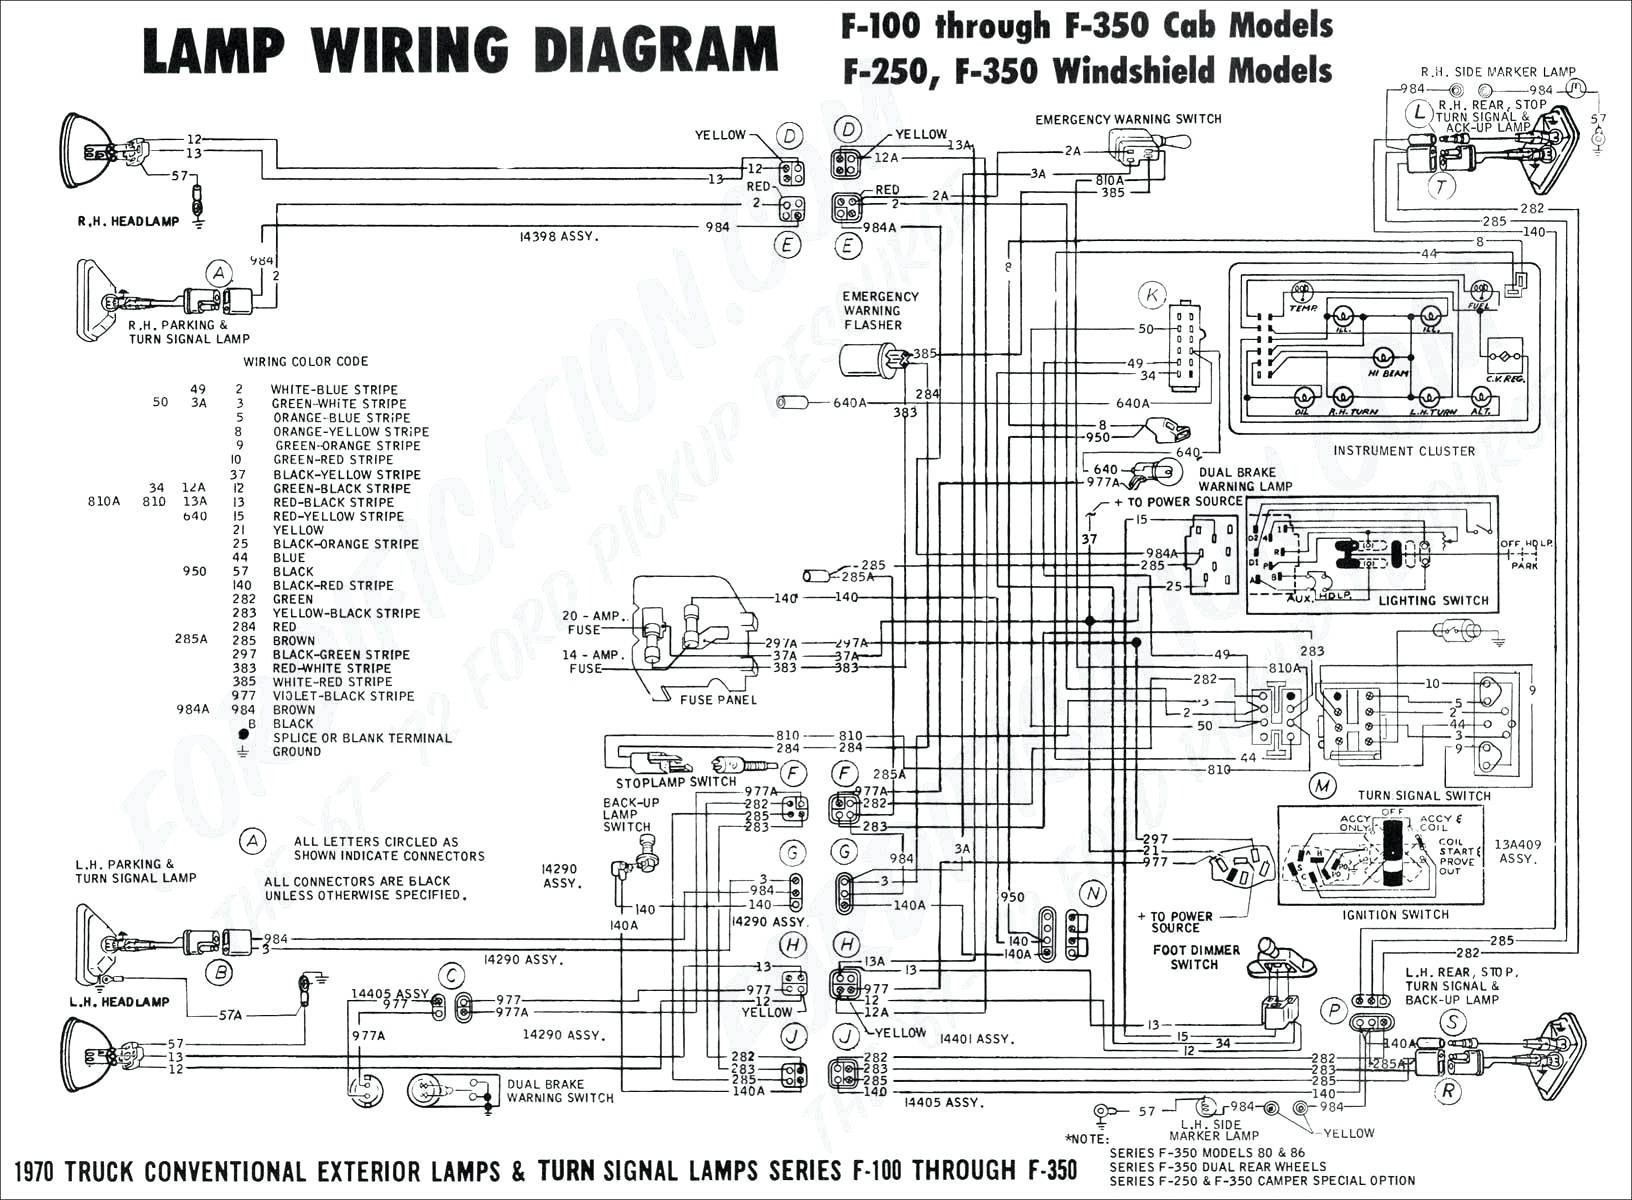 Wire Diagram for 2002 F550 Tail Lights 2001 F350 Wiring Diagram Wiring Diagram Data Of Wire Diagram for 2002 F550 Tail Lights